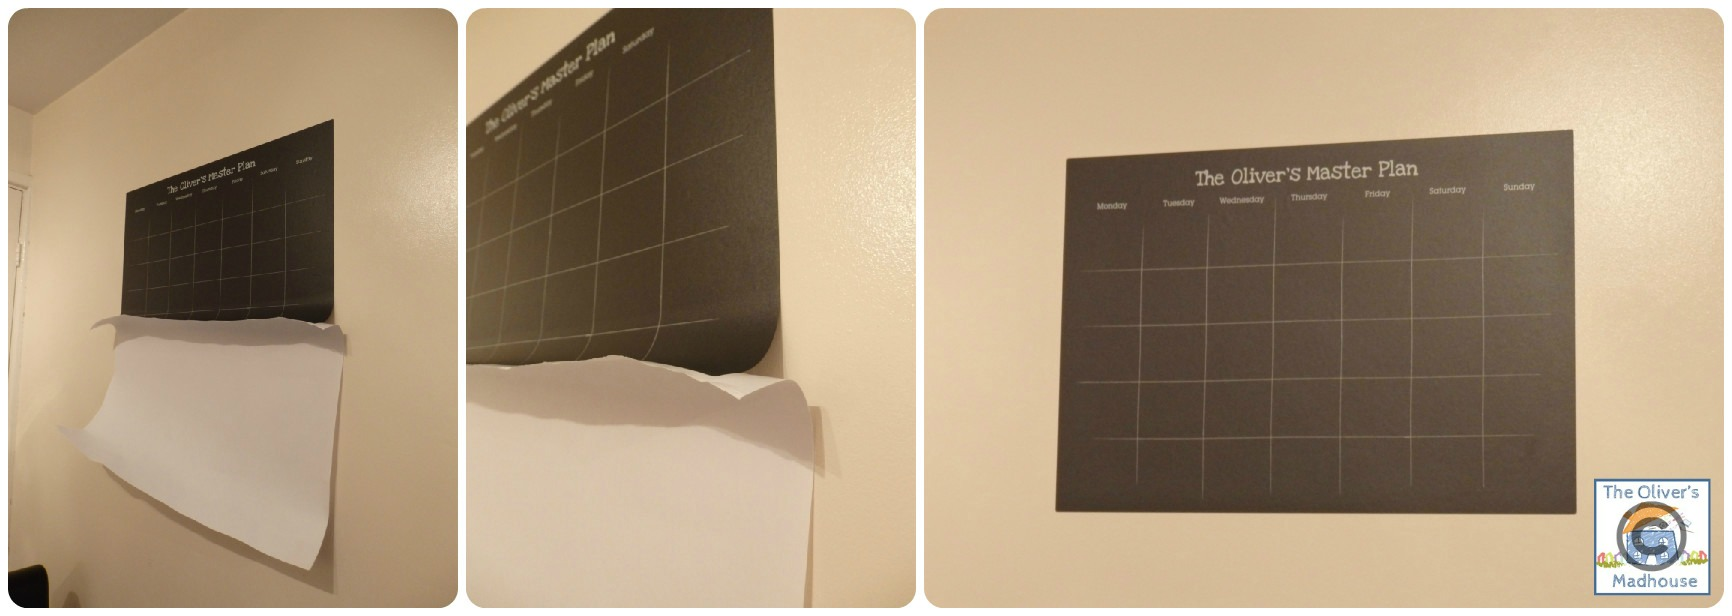 Review: TinyMe - Personalised Chalkboard Planner The Oliver\\\'s Madhouse